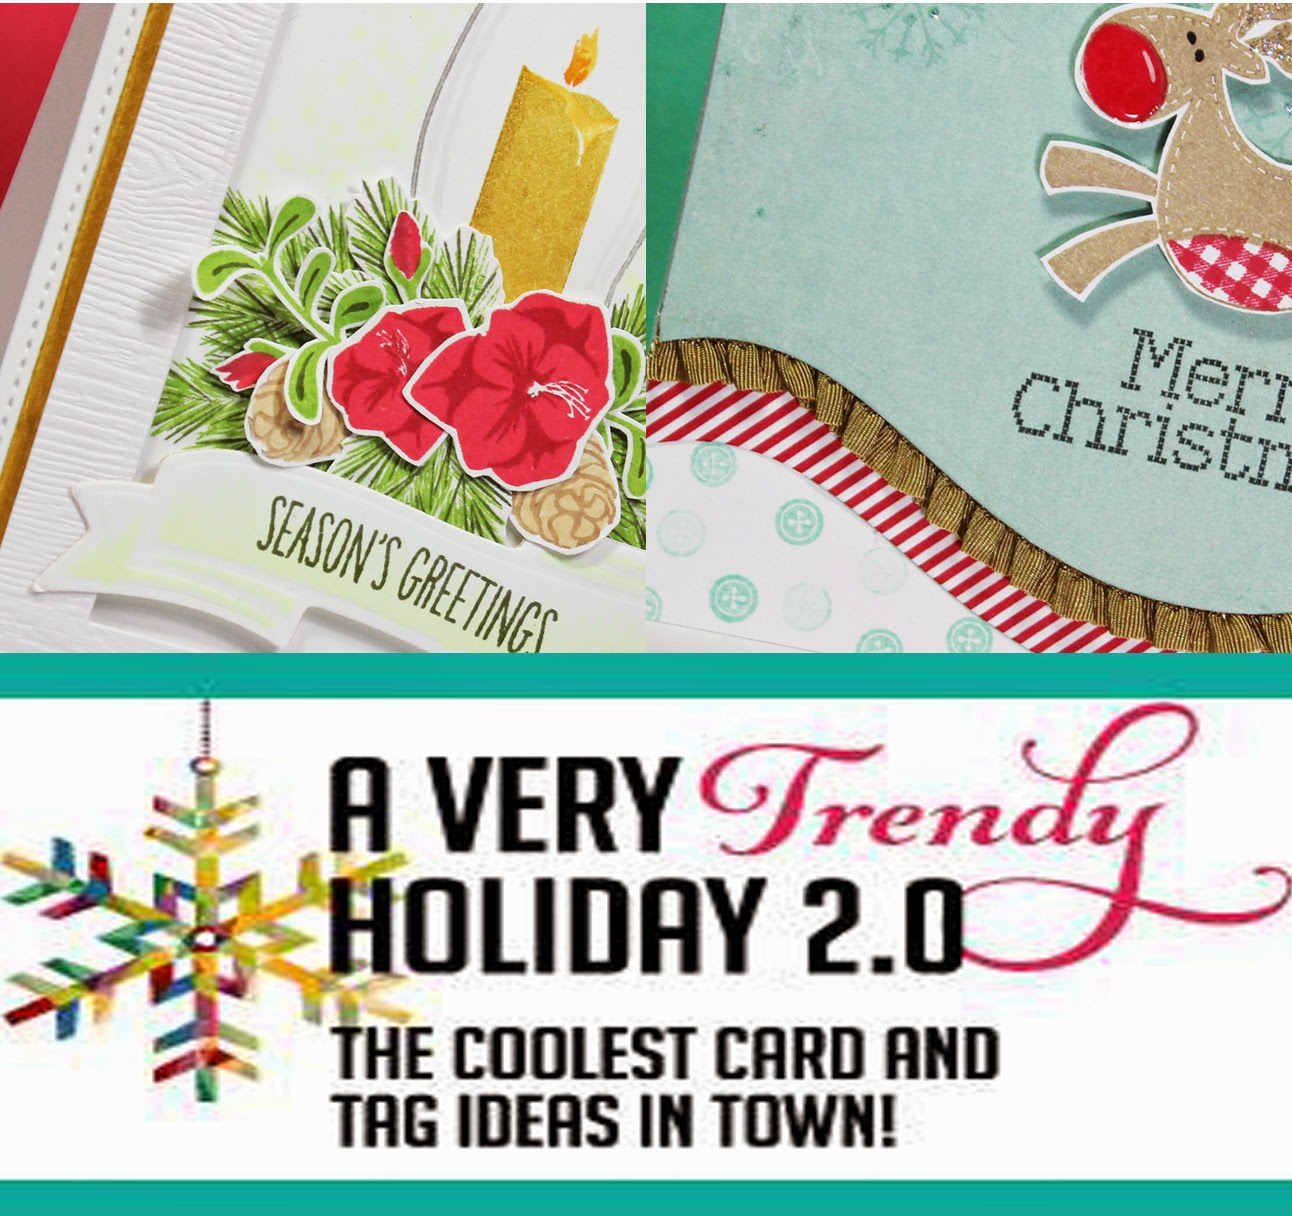 A Very Trendy Holiday Card Class 2.0 at StampNation